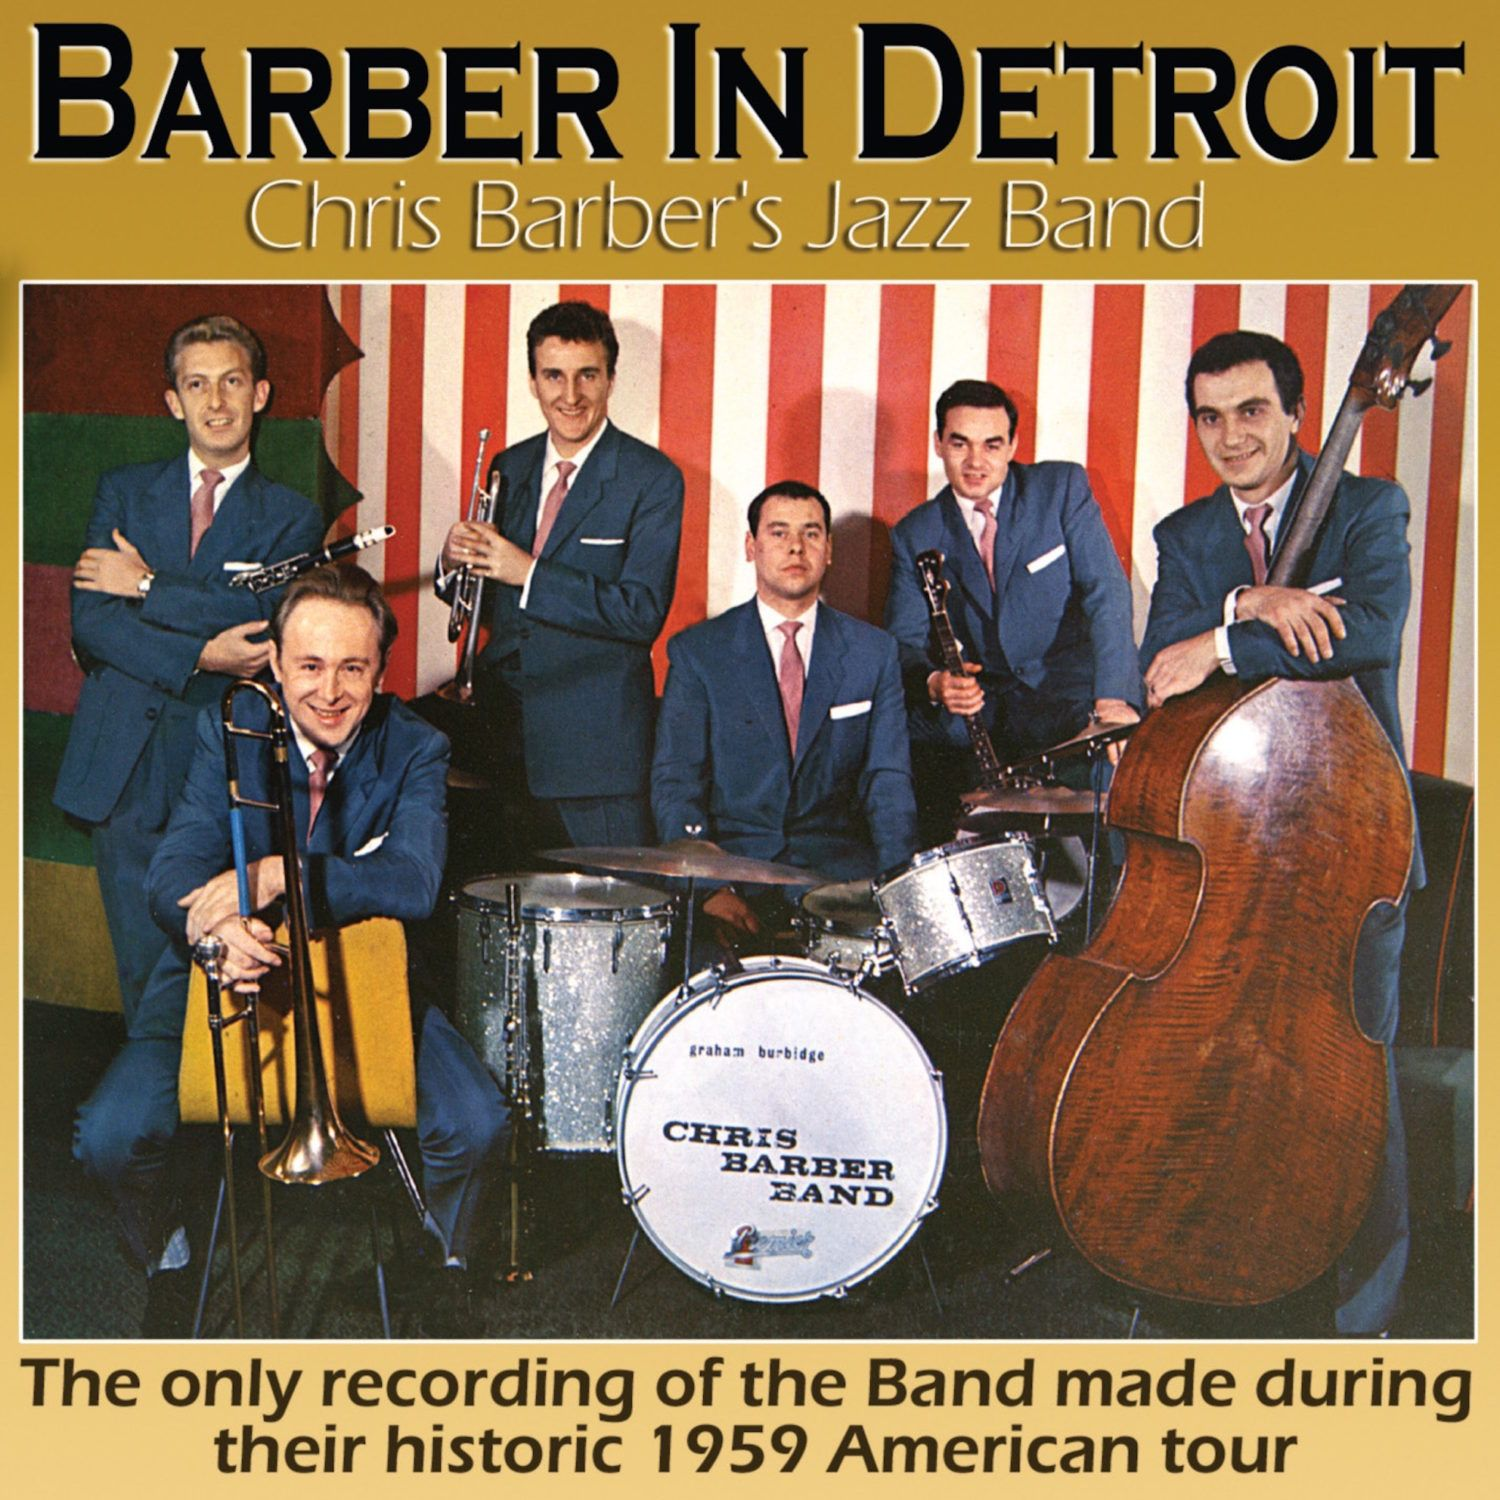 BARBER IN DETROIT